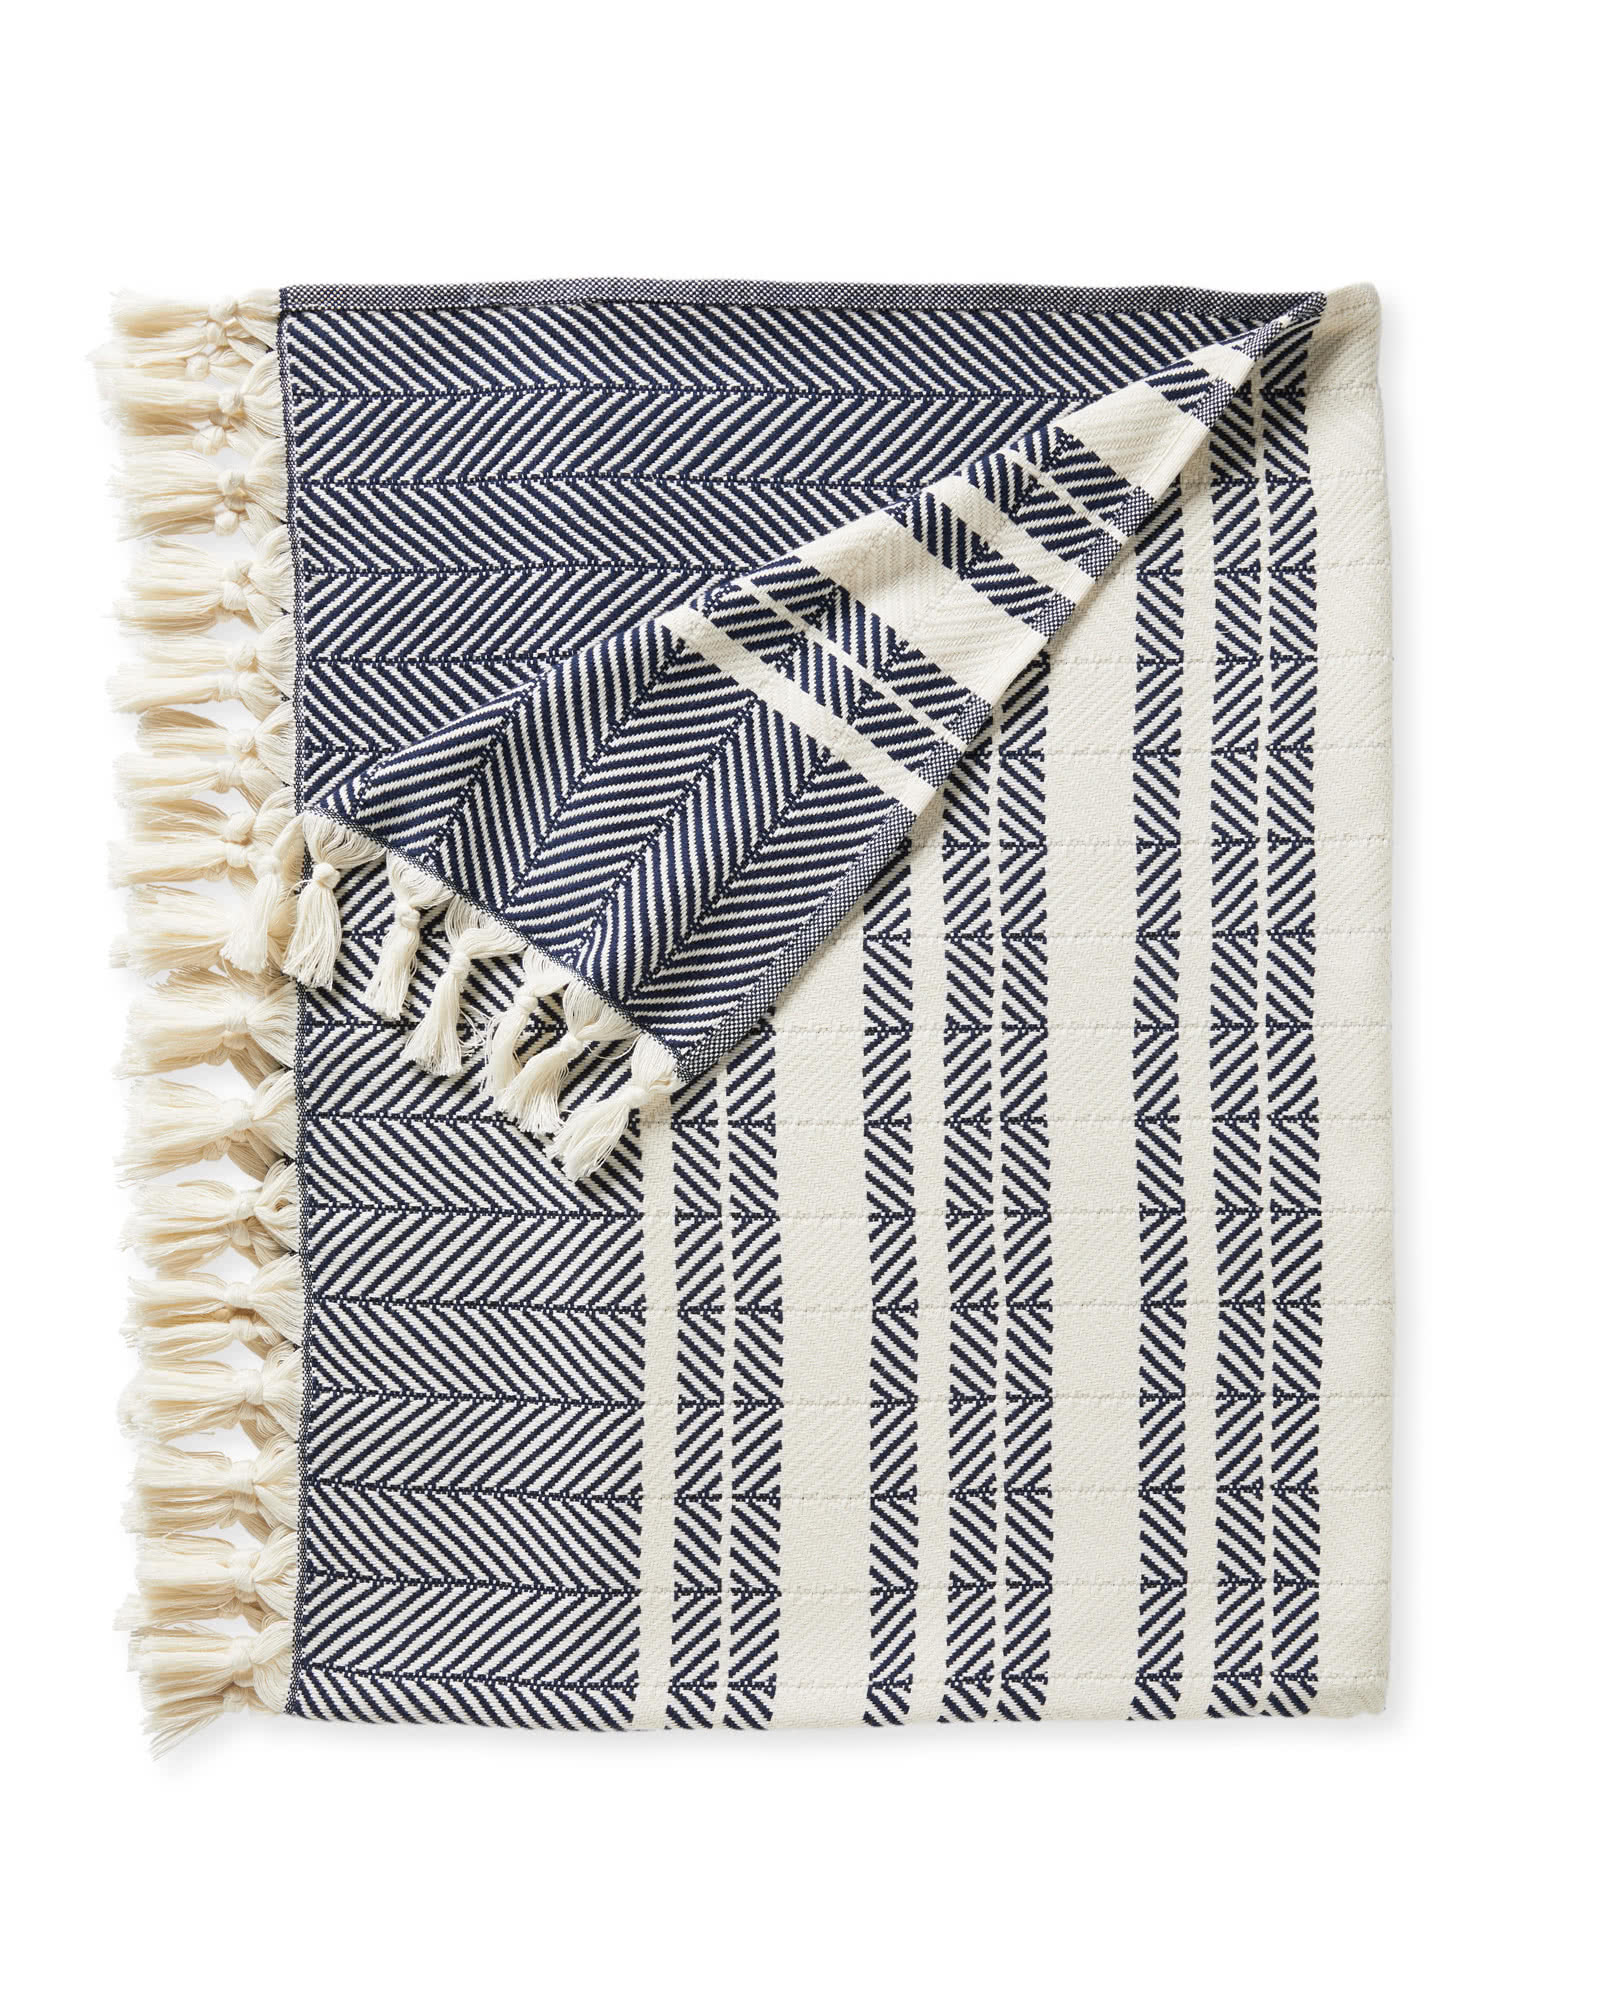 Palermo Cotton Throw, Navy